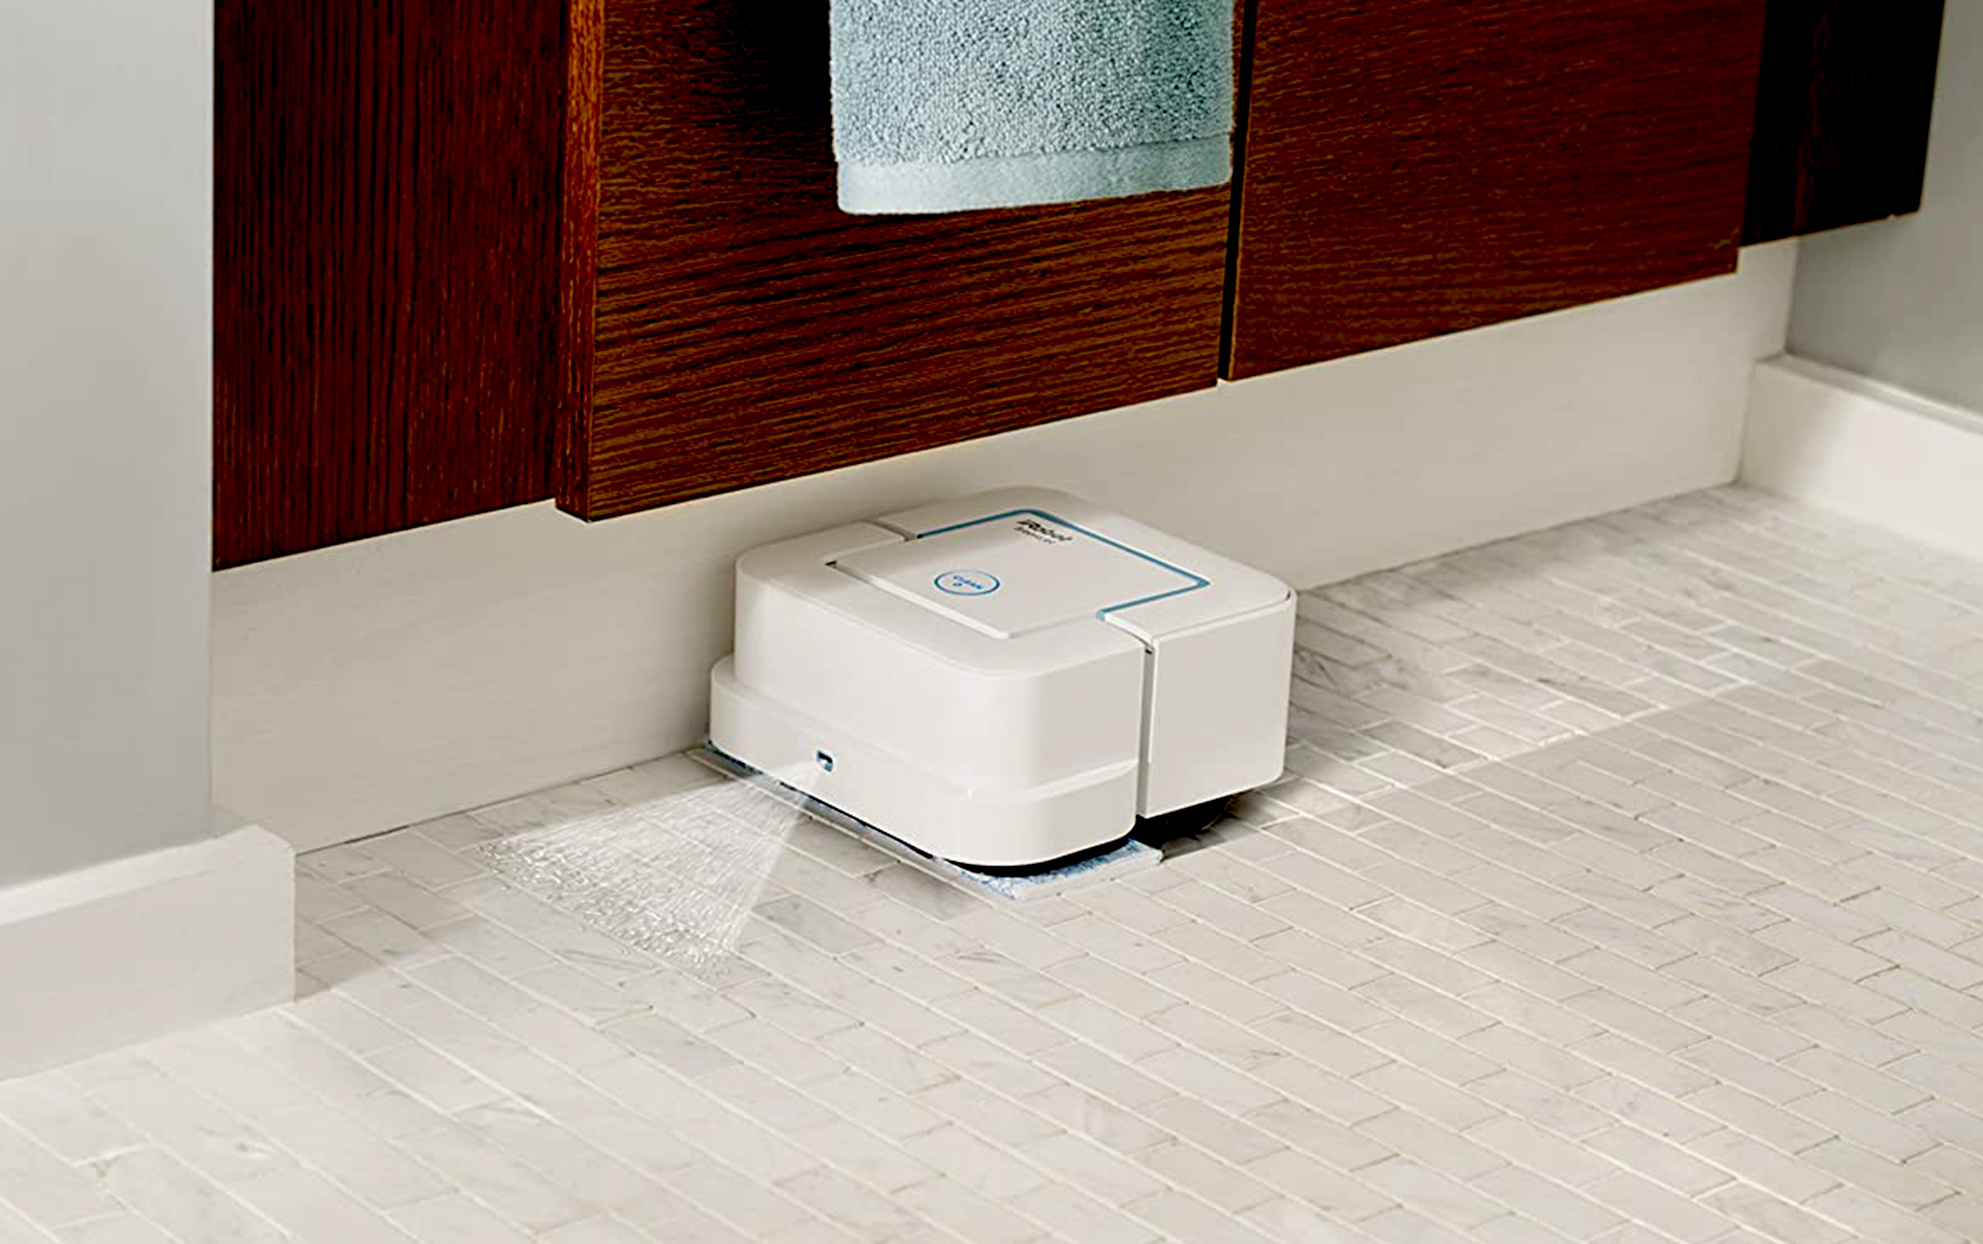 iRobot Mop being used on a bathroom tile floor